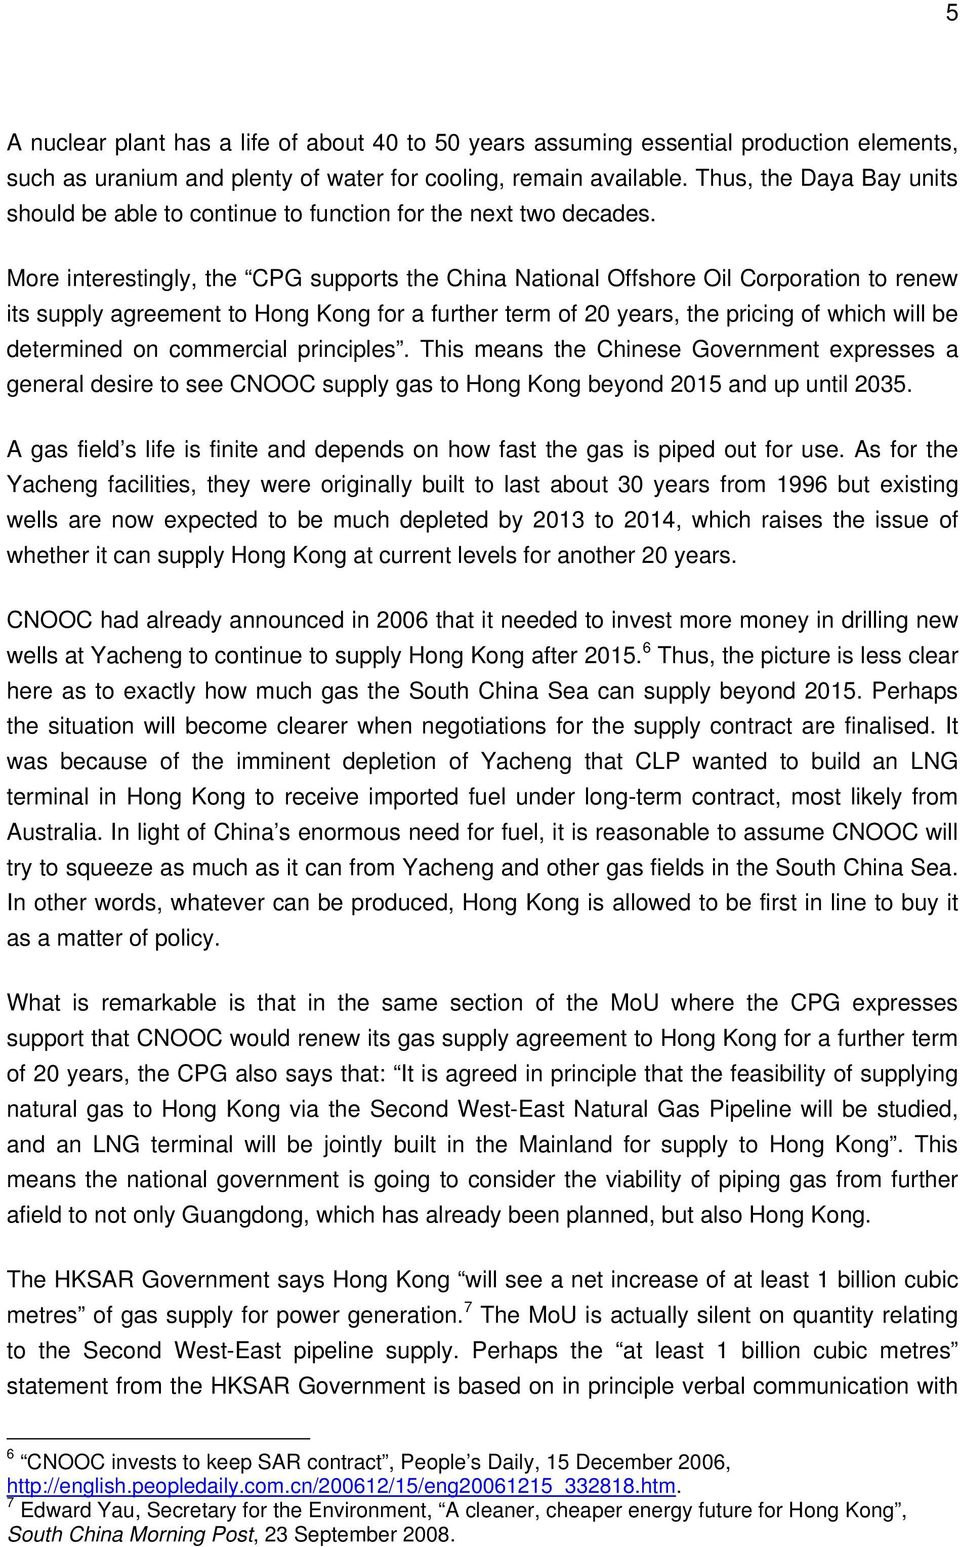 More interestingly, the CPG supports the China National Offshore Oil Corporation to renew its supply agreement to Hong Kong for a further term of 20 years, the pricing of which will be determined on